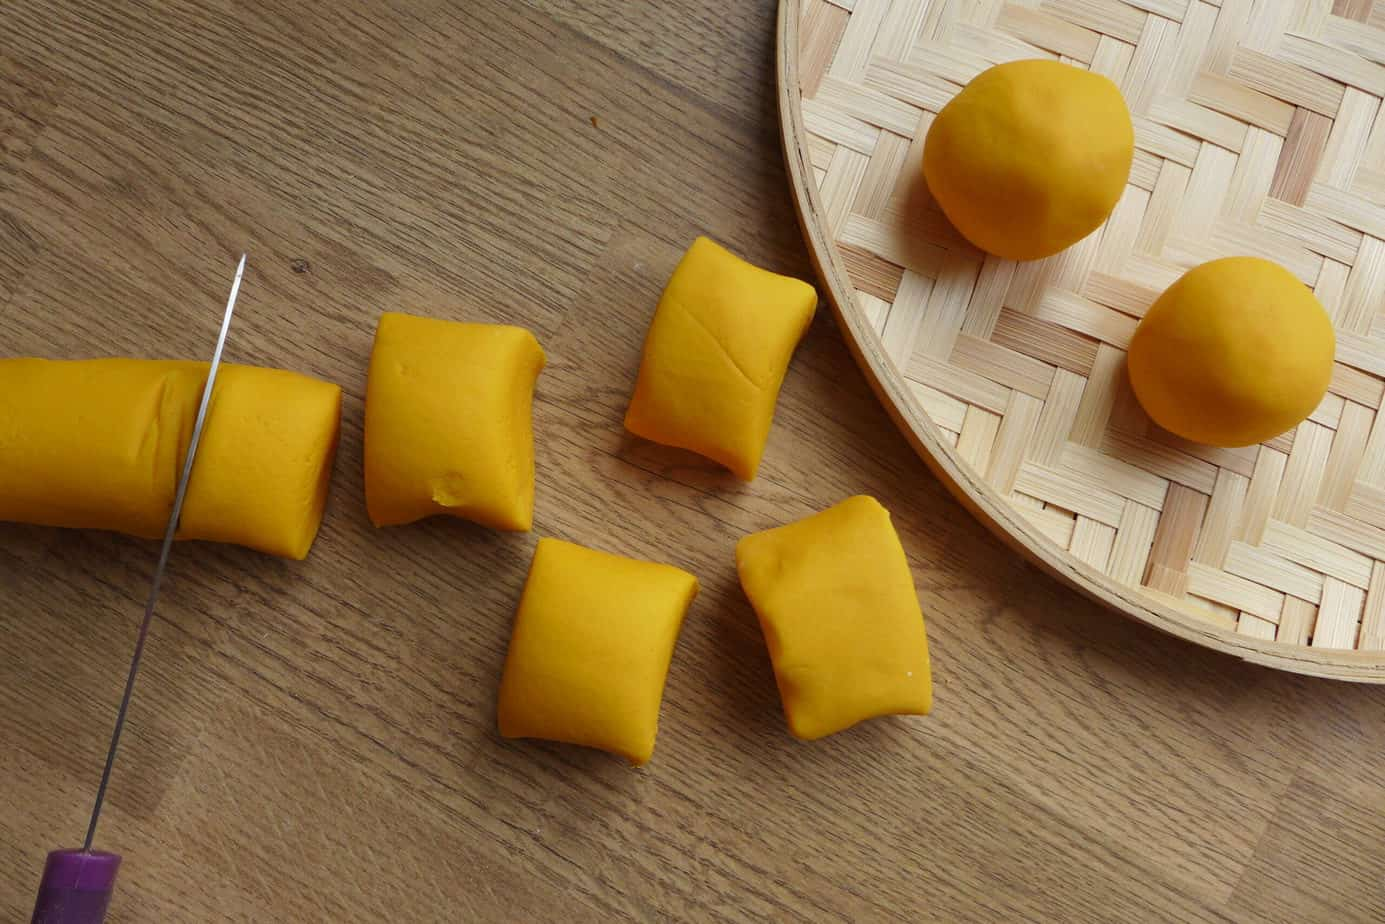 Dough pieces made of butternut squash and glutinous rice flour